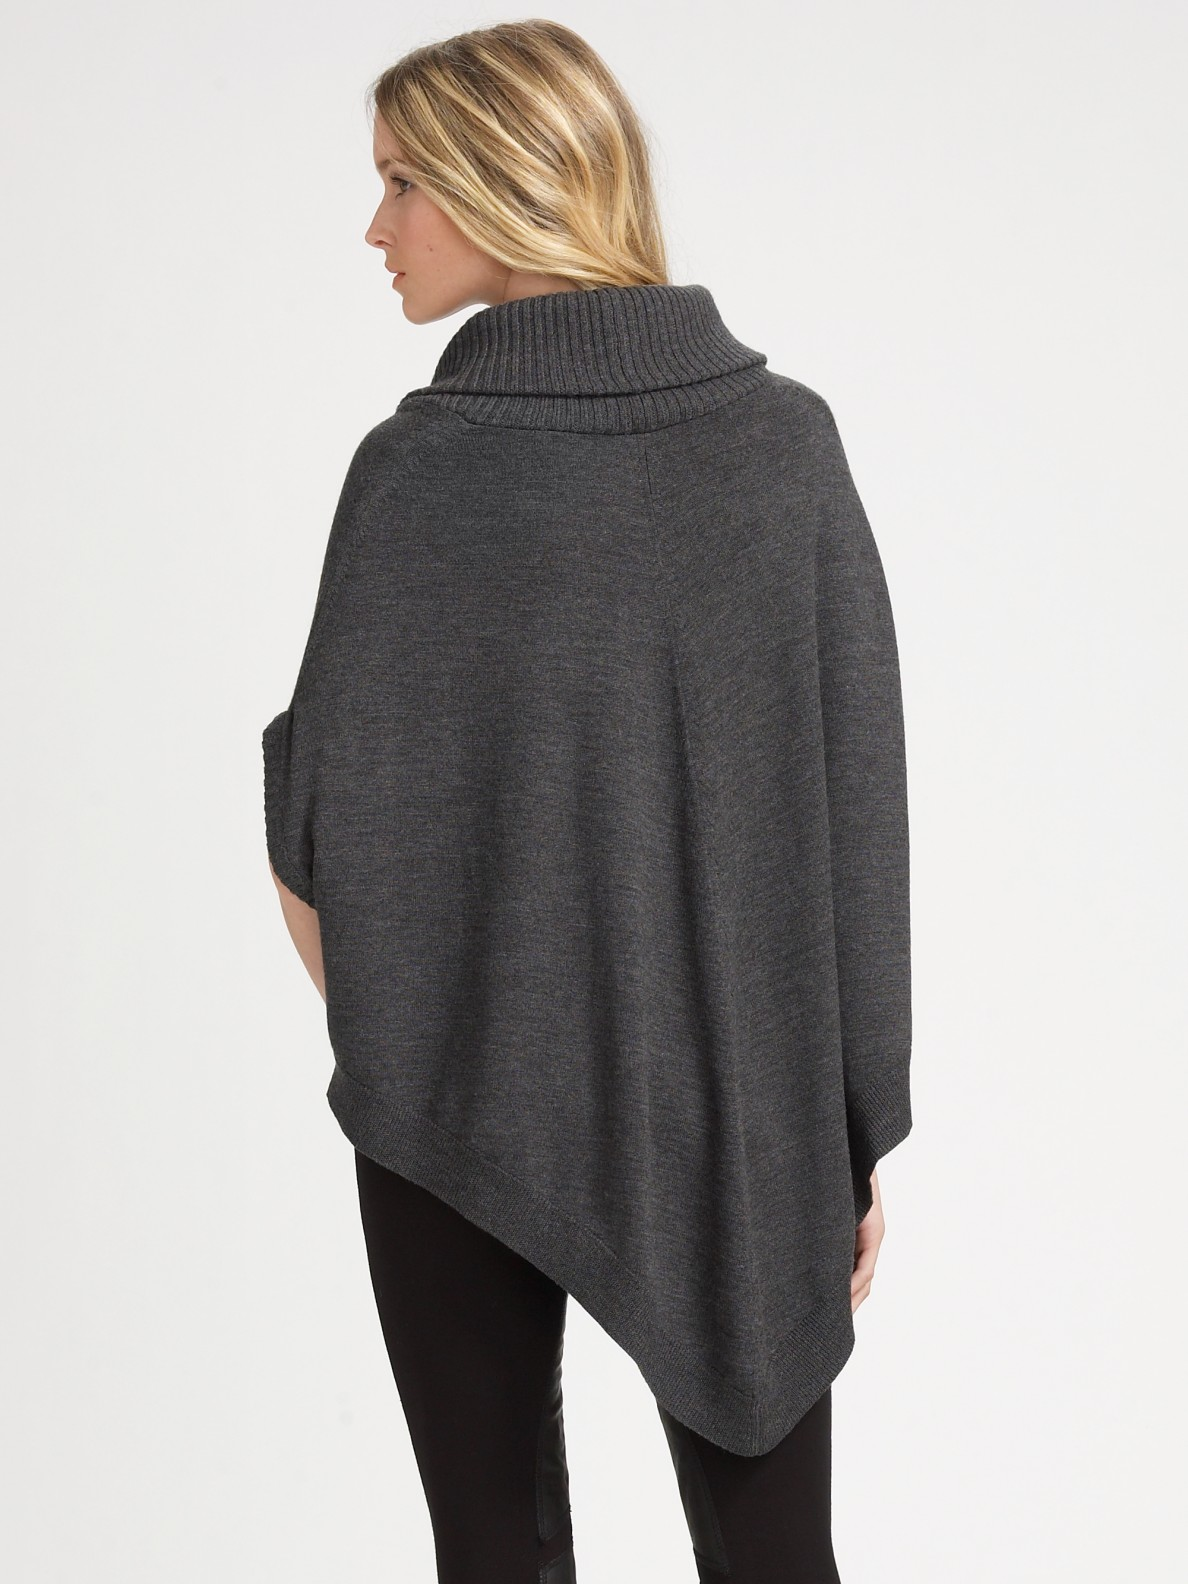 Women S Merino Wool Sweater